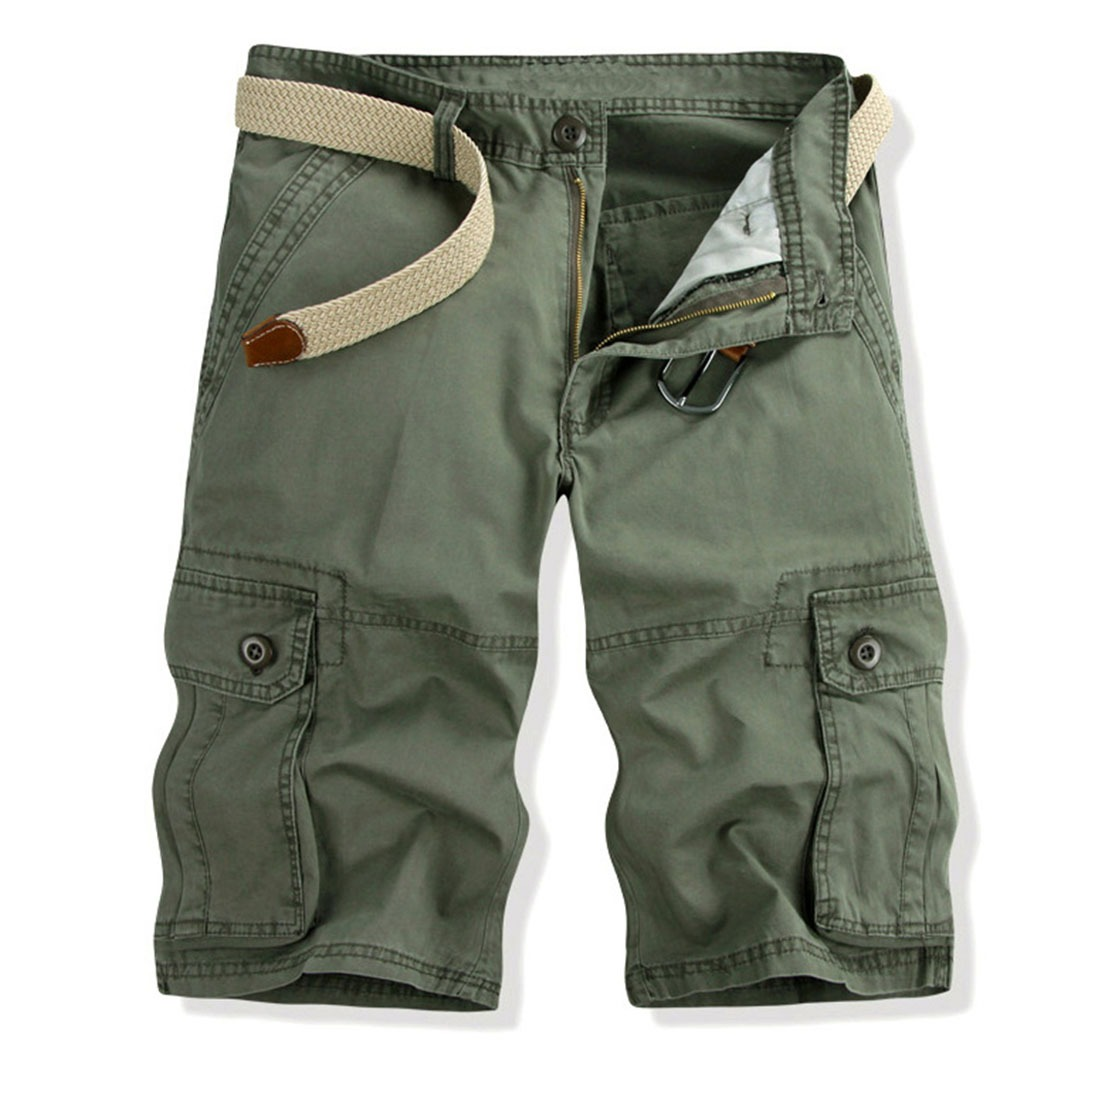 Men Cotton Camouflage Multi-Pocket Outdoor Casual Overalls Cargo Shorts Pants